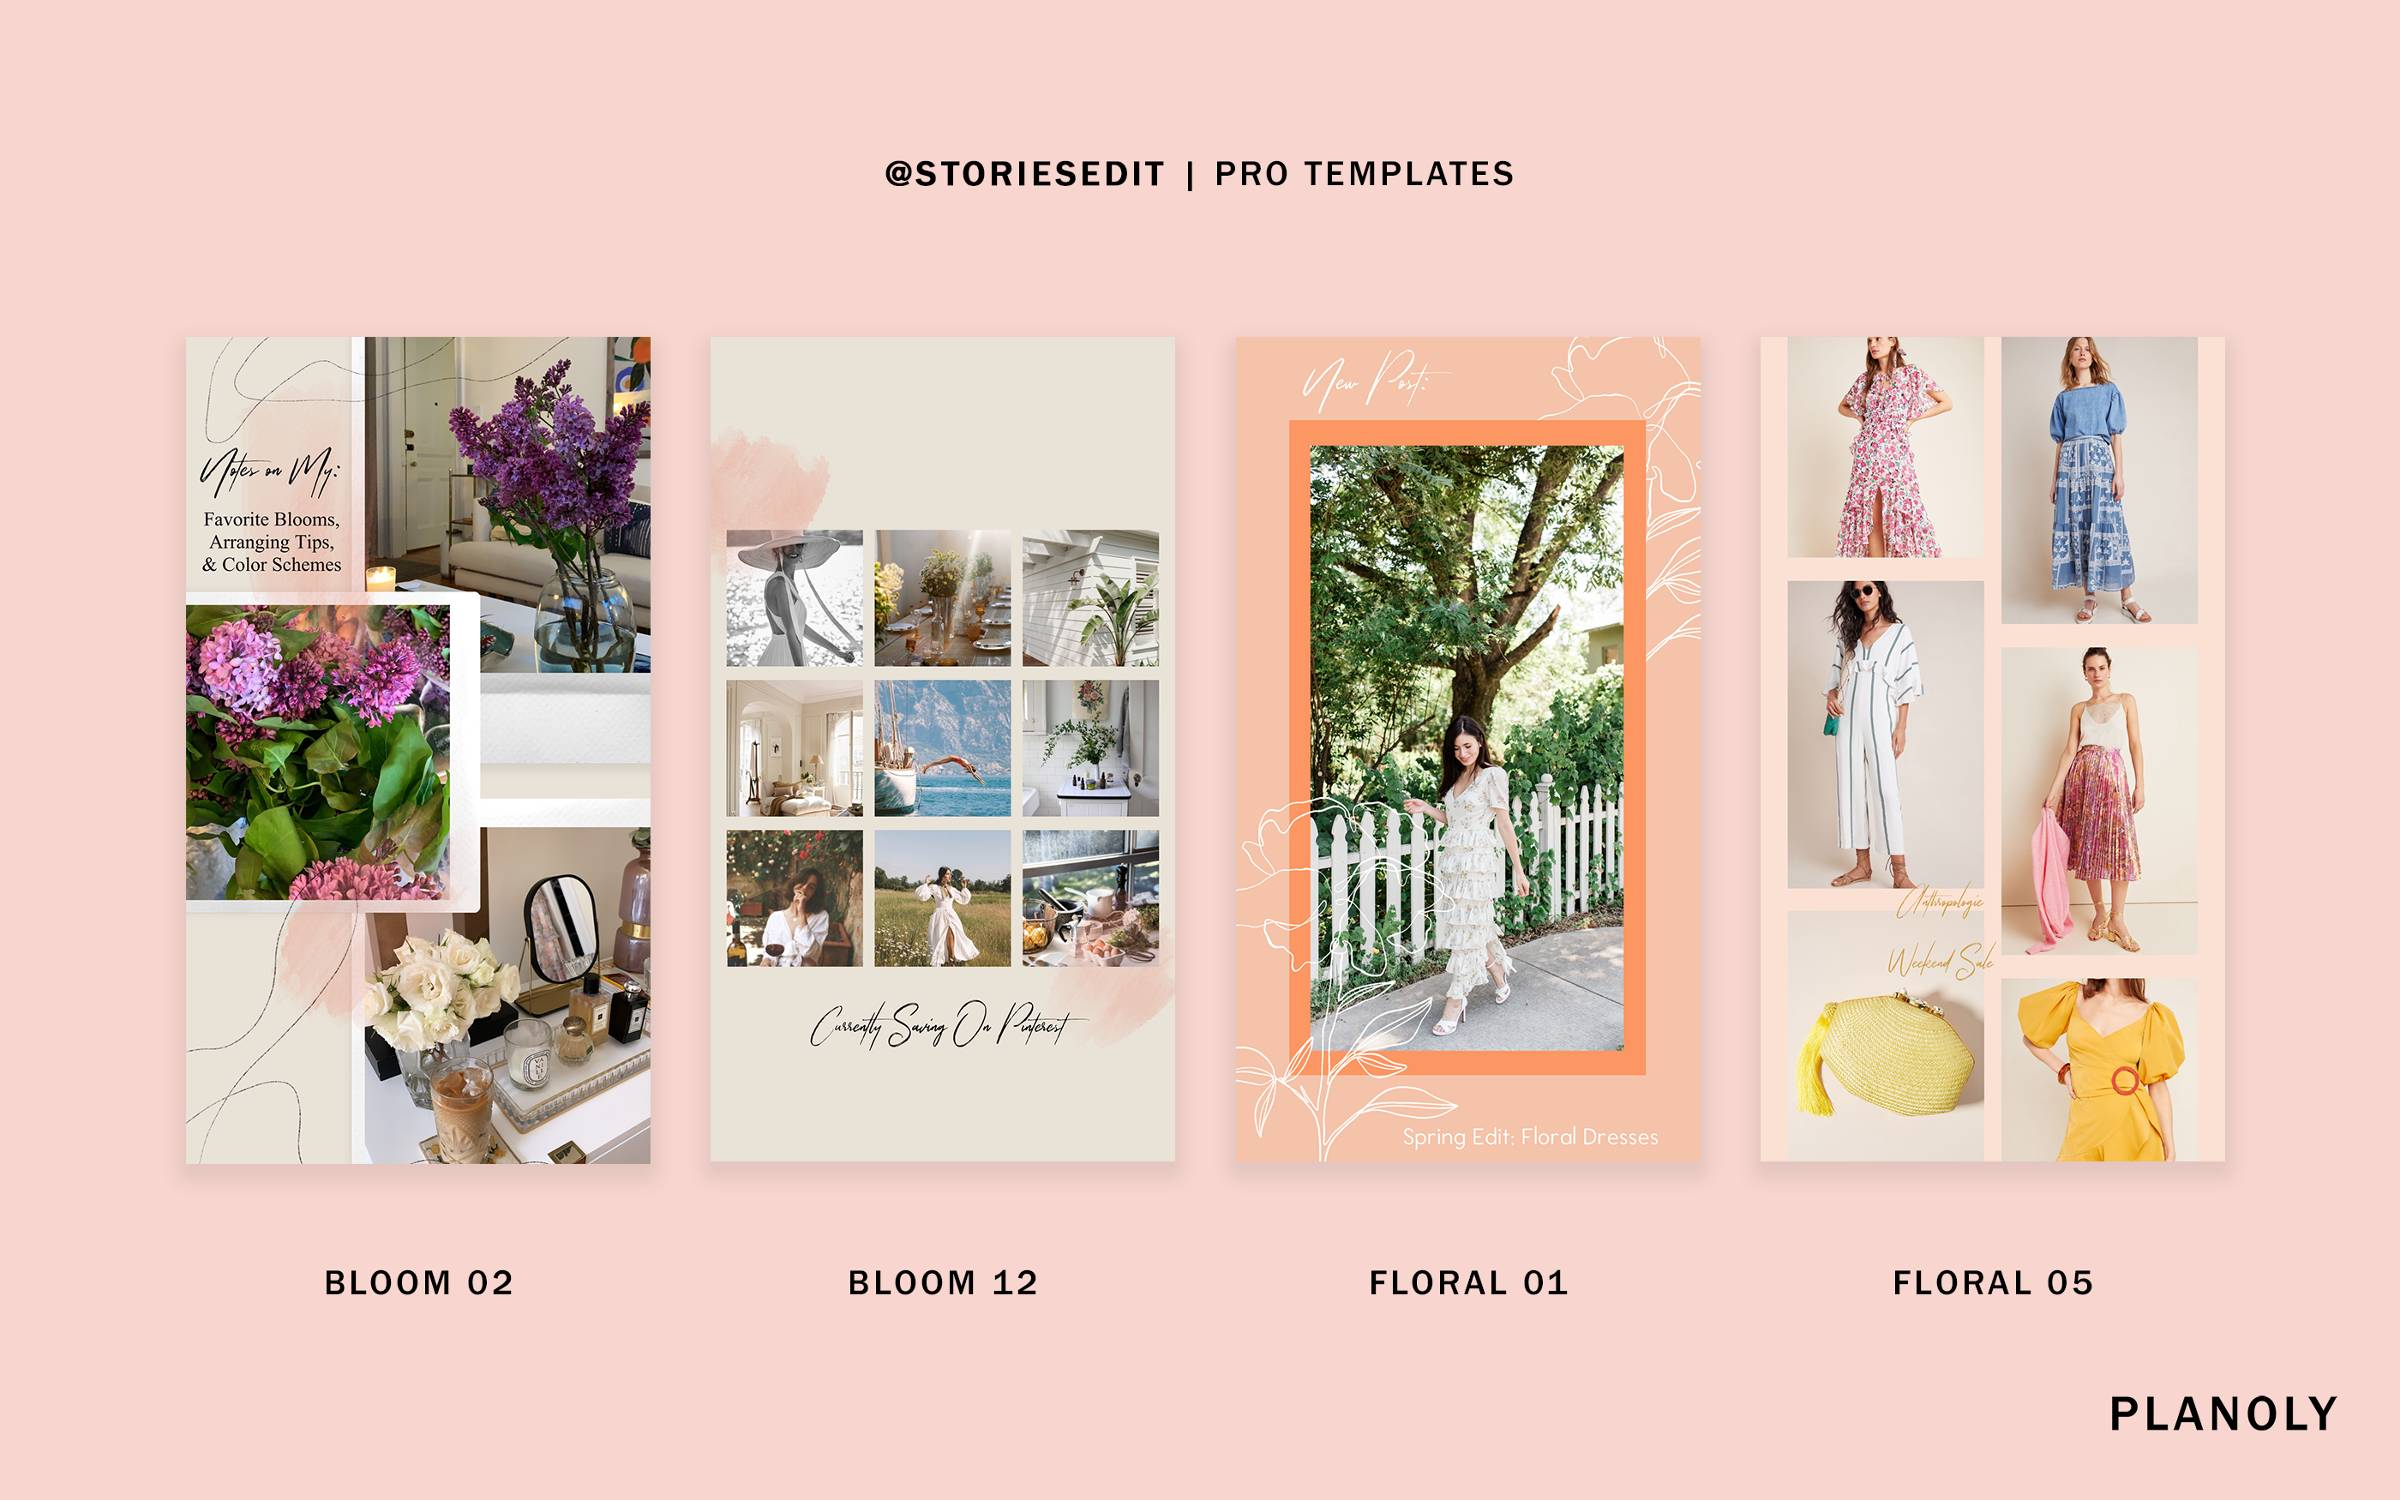 PLANOLY-Blog-Post-SE-Spring-Collection-Florals-and-Blooms-Image-2